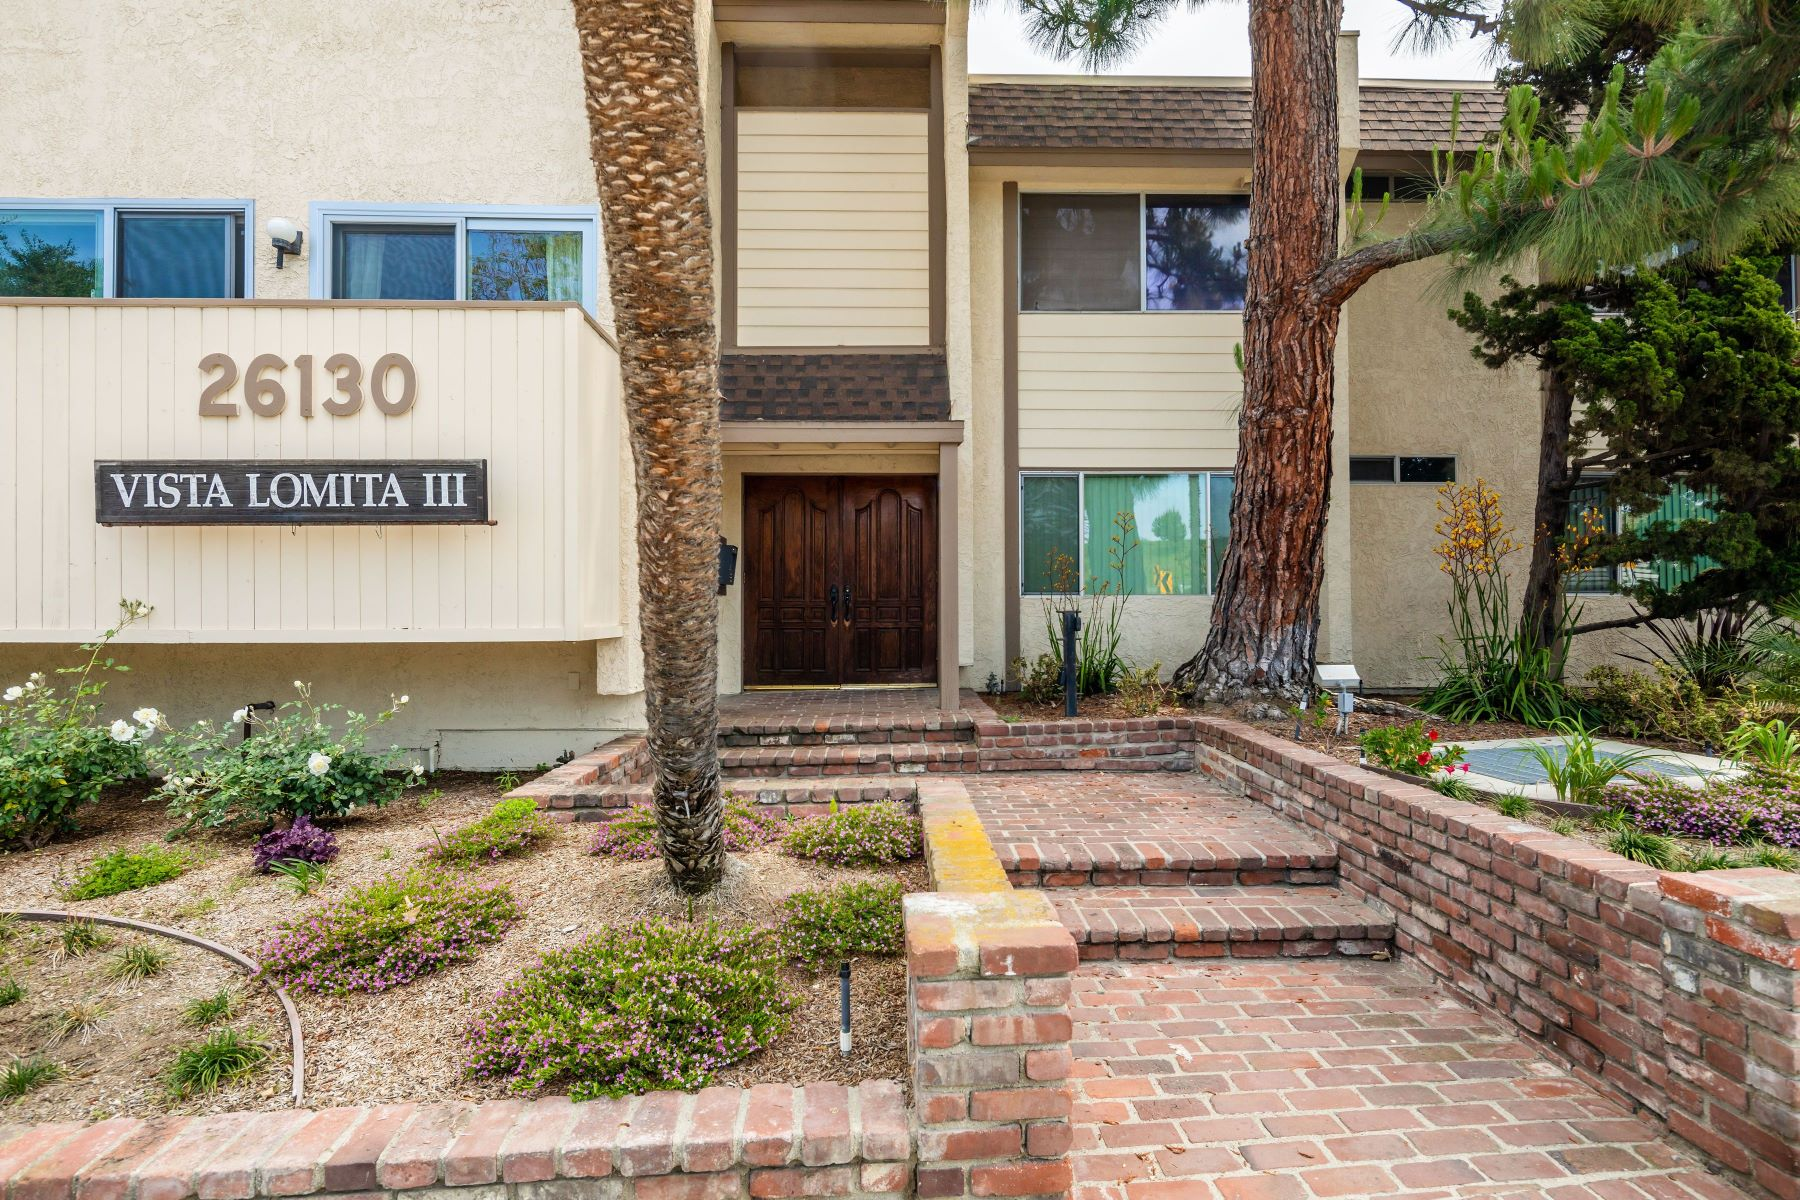 Condominiums for Active at 26130 Narbonne Avenue #105, Lomita, CA 90717 26130 Narbonne Avenue #105 Lomita, California 90717 United States